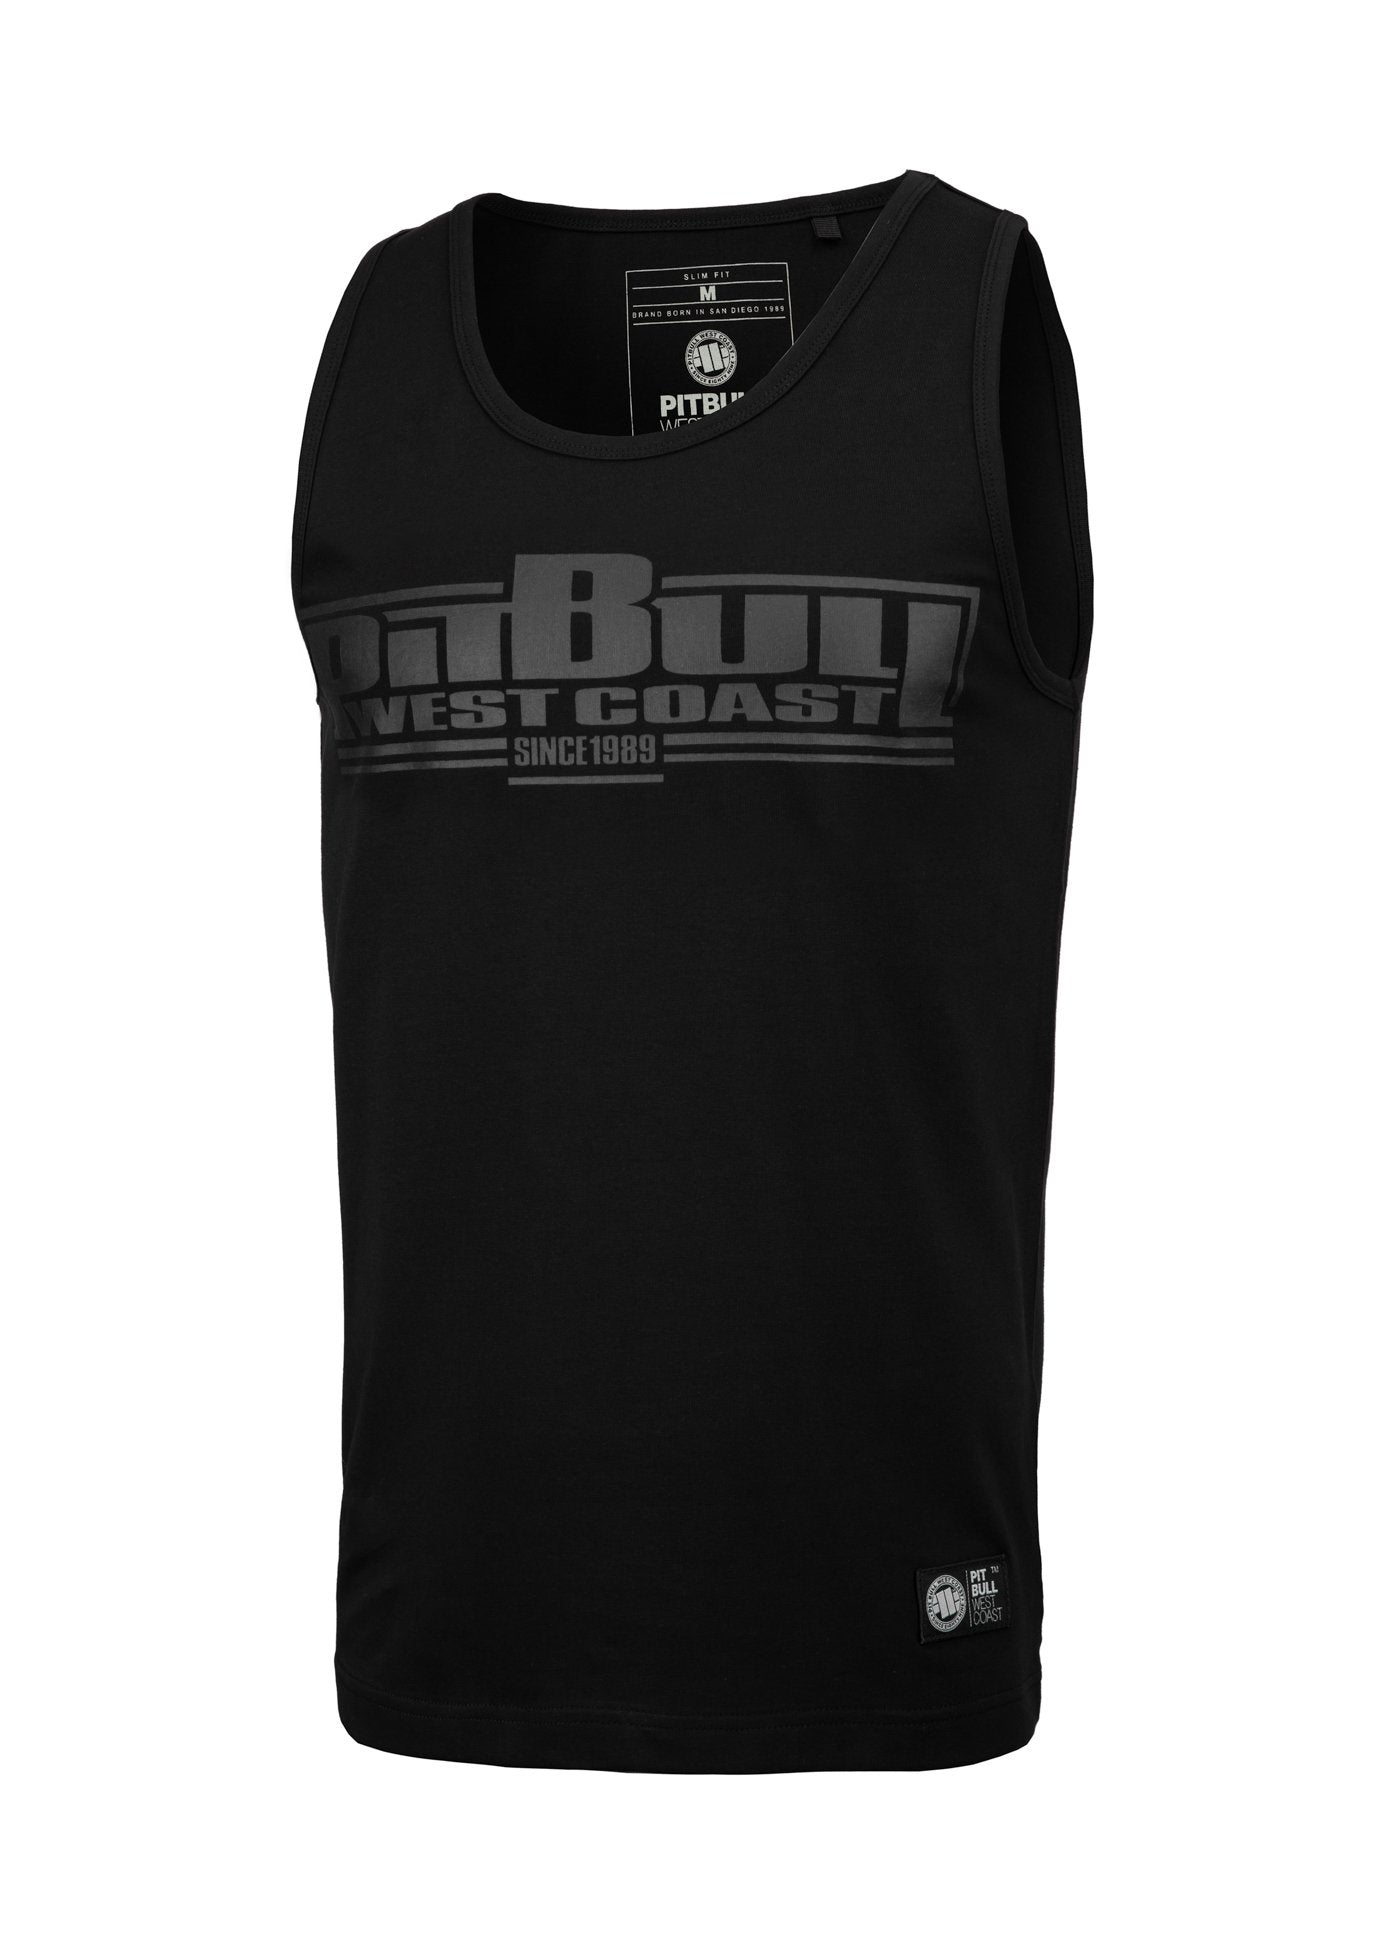 Tank Top Slim Fit Boxing Black - pitbullwestcoast